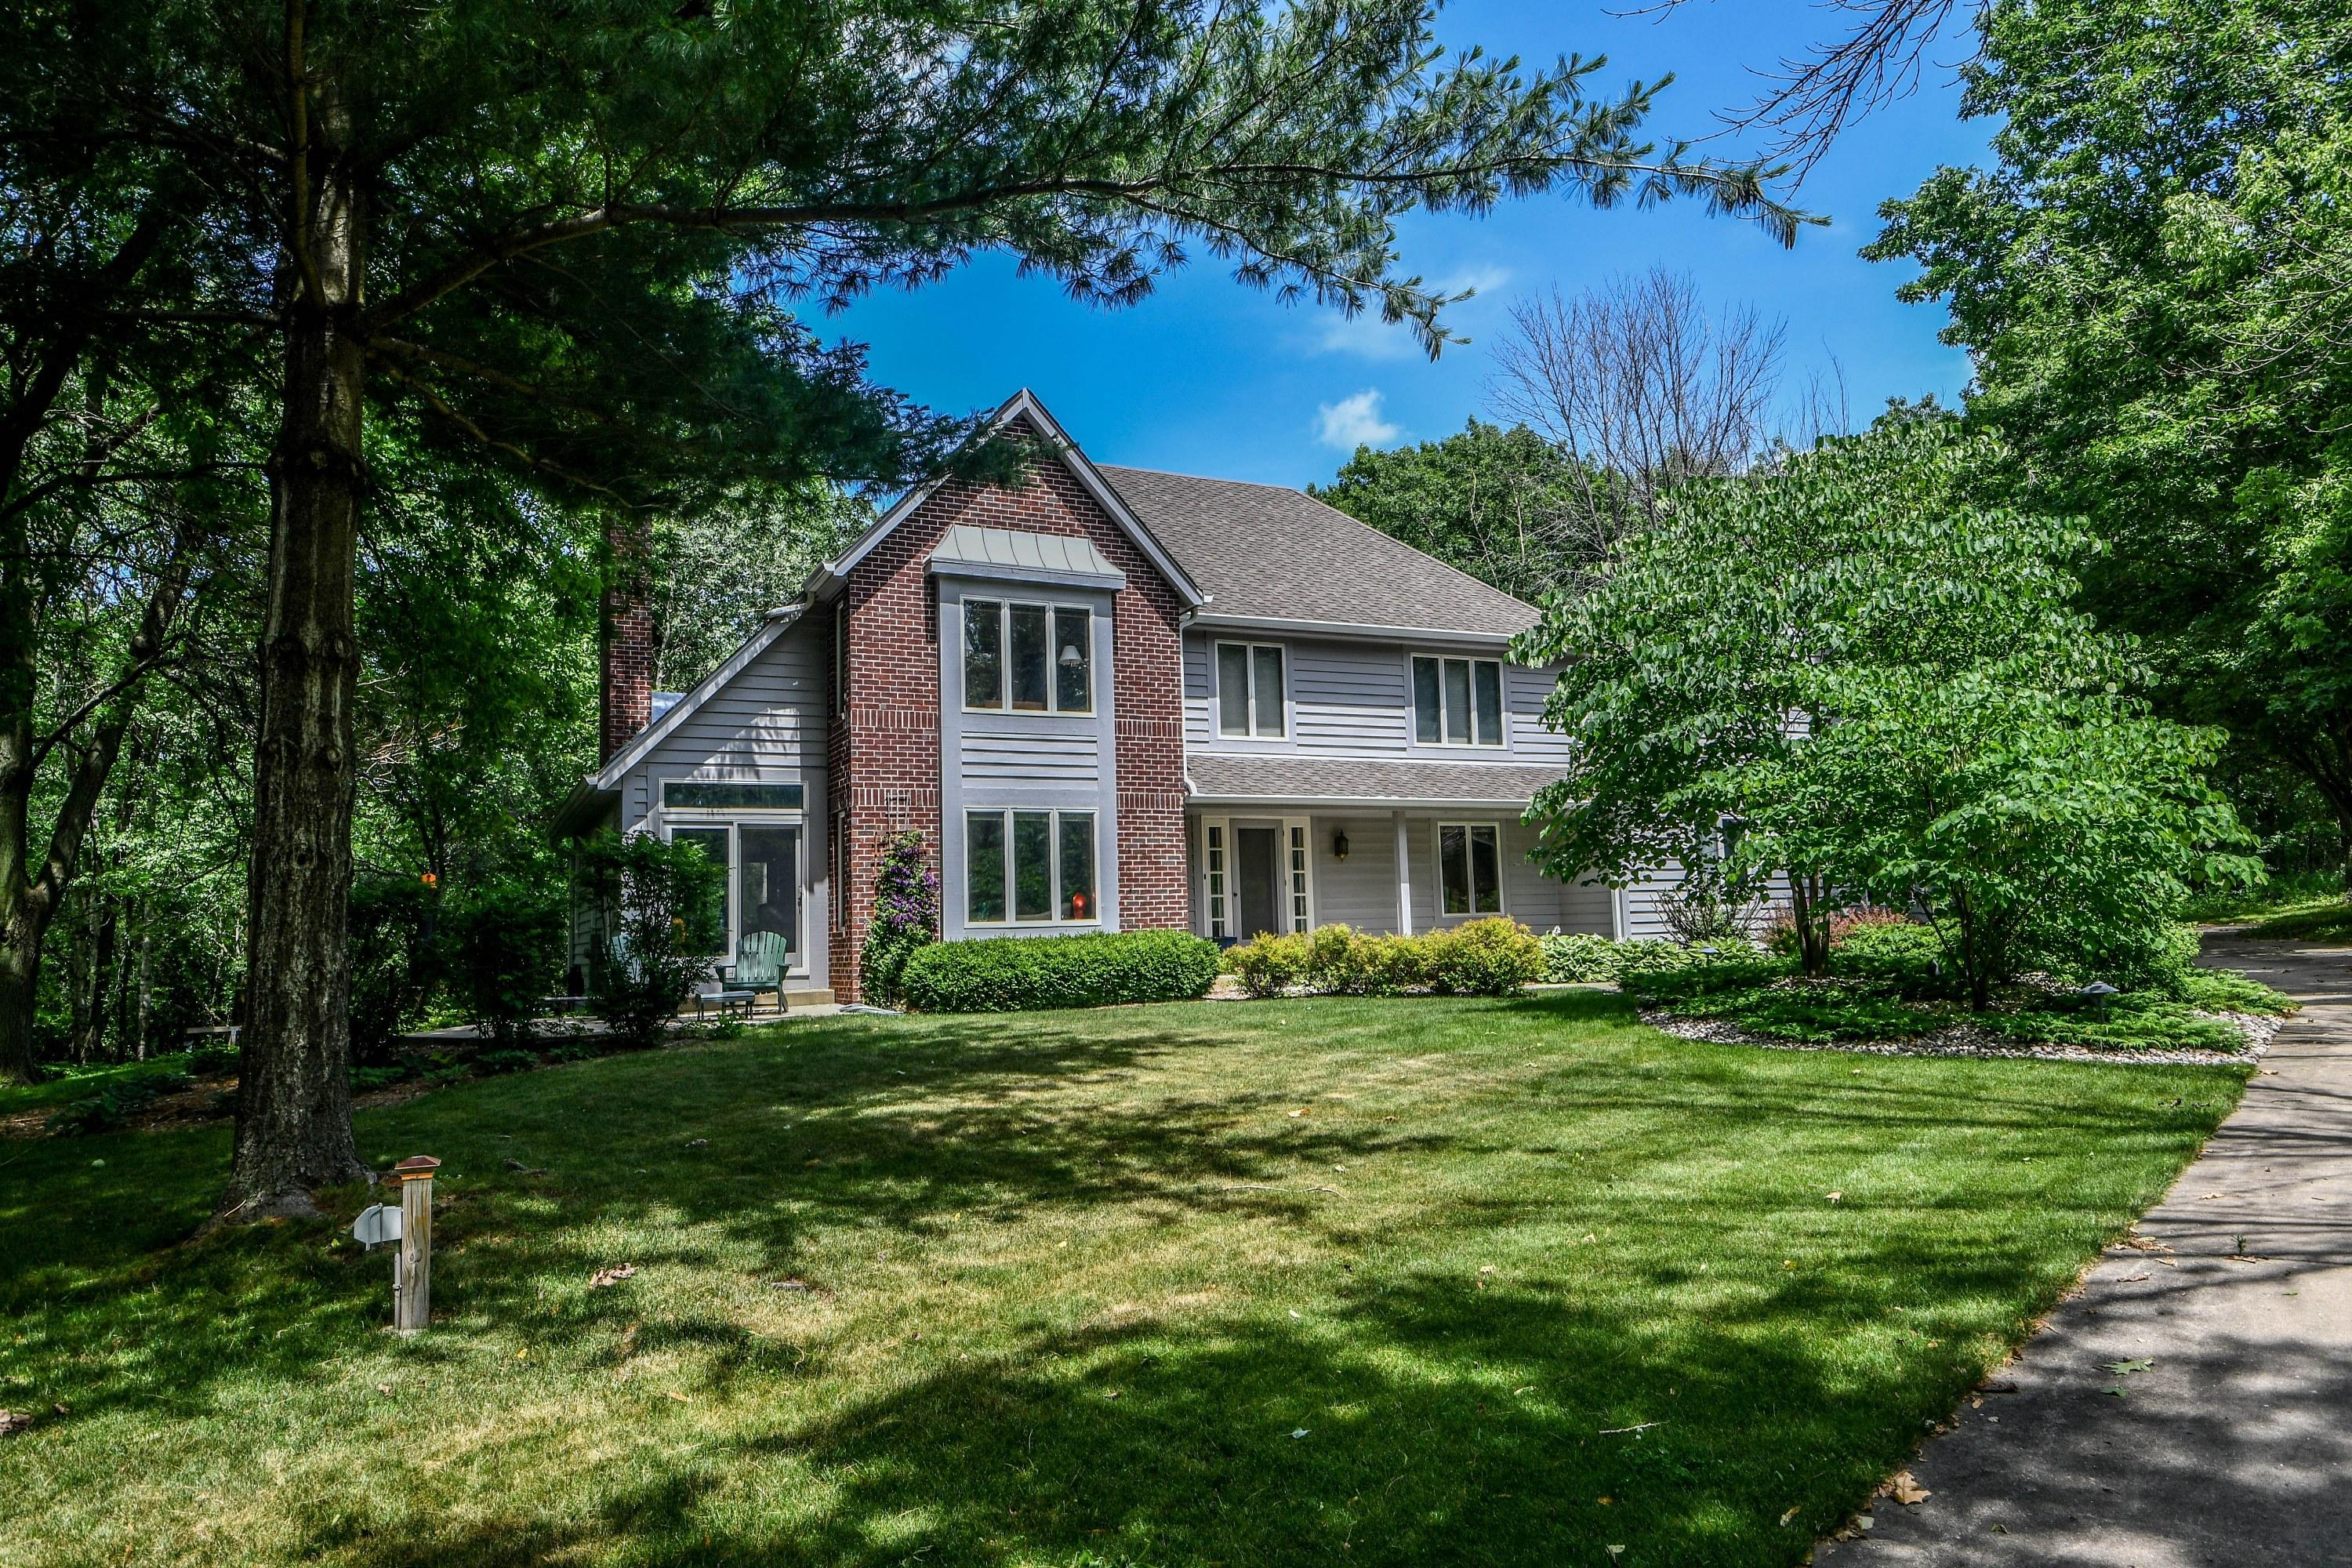 1248 Lost Woods Rd, Summit, Wisconsin 53066, 4 Bedrooms Bedrooms, 12 Rooms Rooms,3 BathroomsBathrooms,Single-Family,For Sale,Lost Woods Rd,1697187